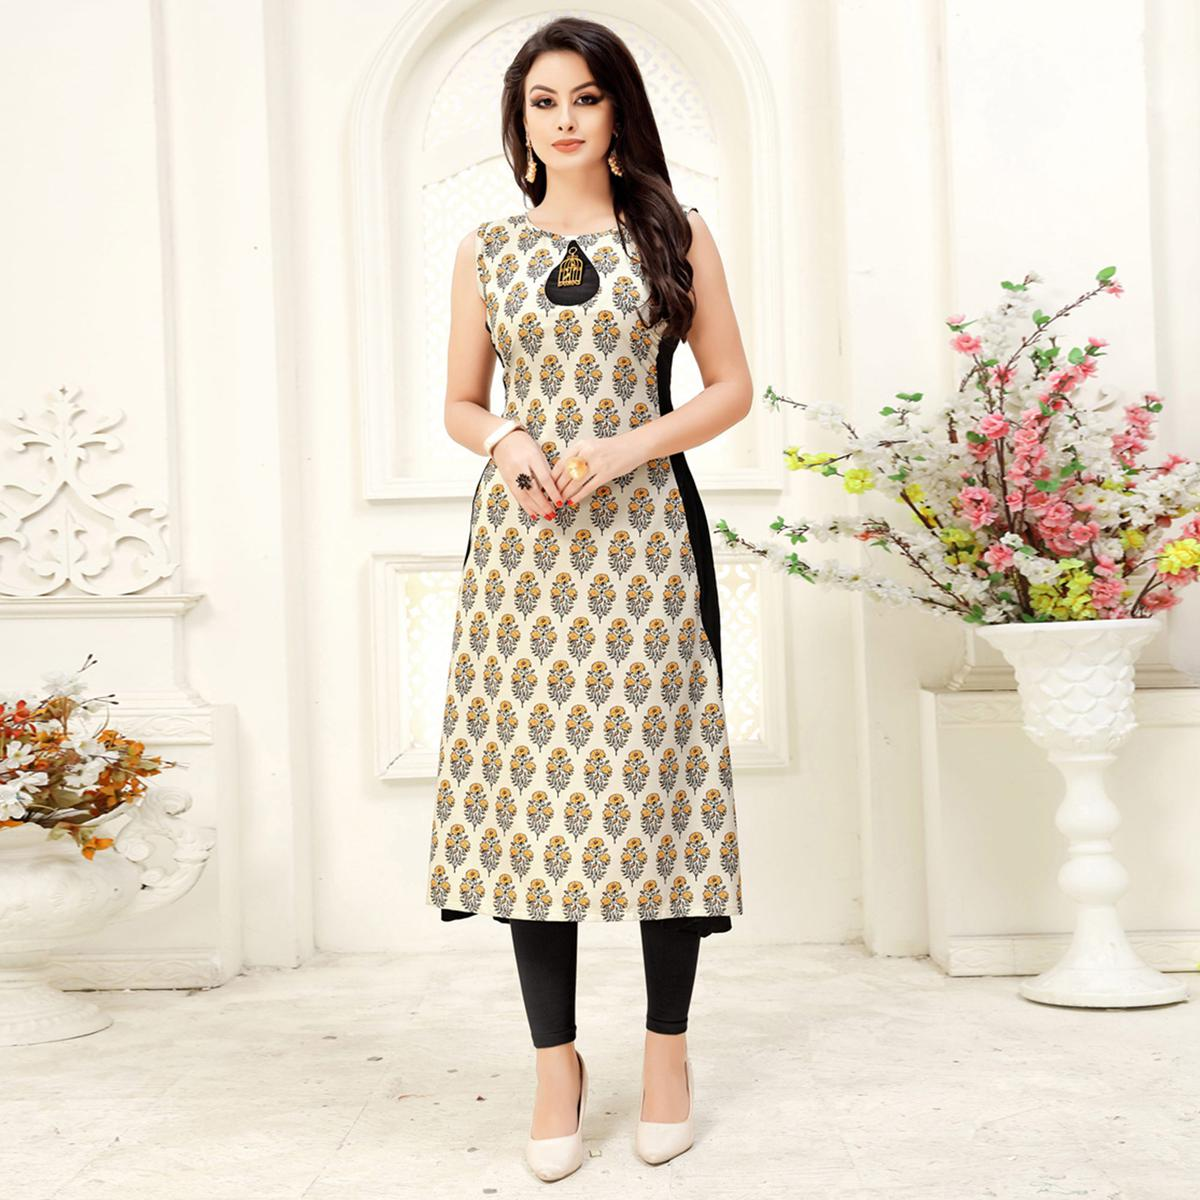 Gleaming Cream & Black Colored Party Wear Printed Crepe Kurti